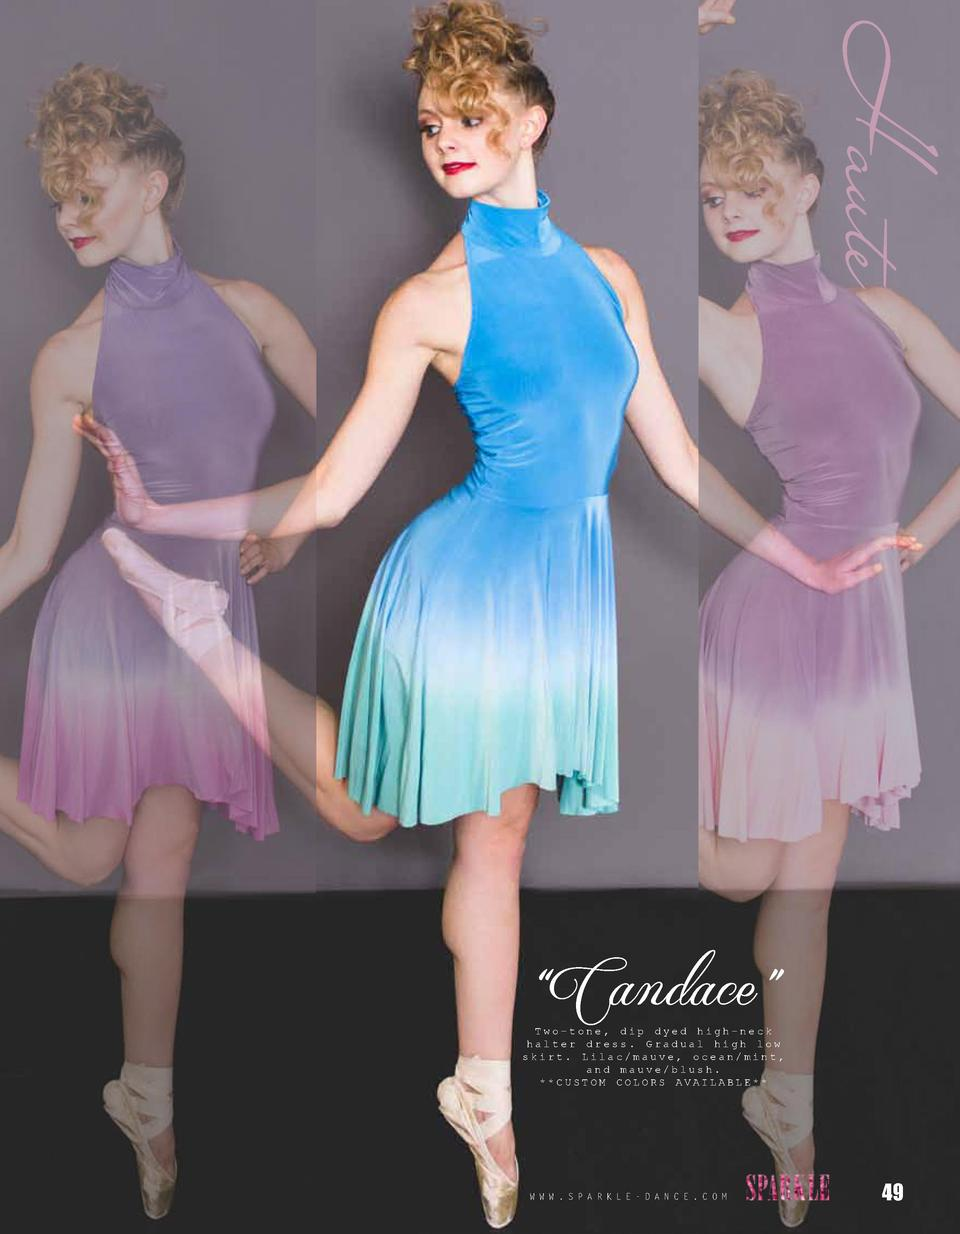 Haute    Candace     Two-tone, dip dyed high-neck halter dress. Gradual high low skirt. Lilac mauve, ocean mint, and mauve...